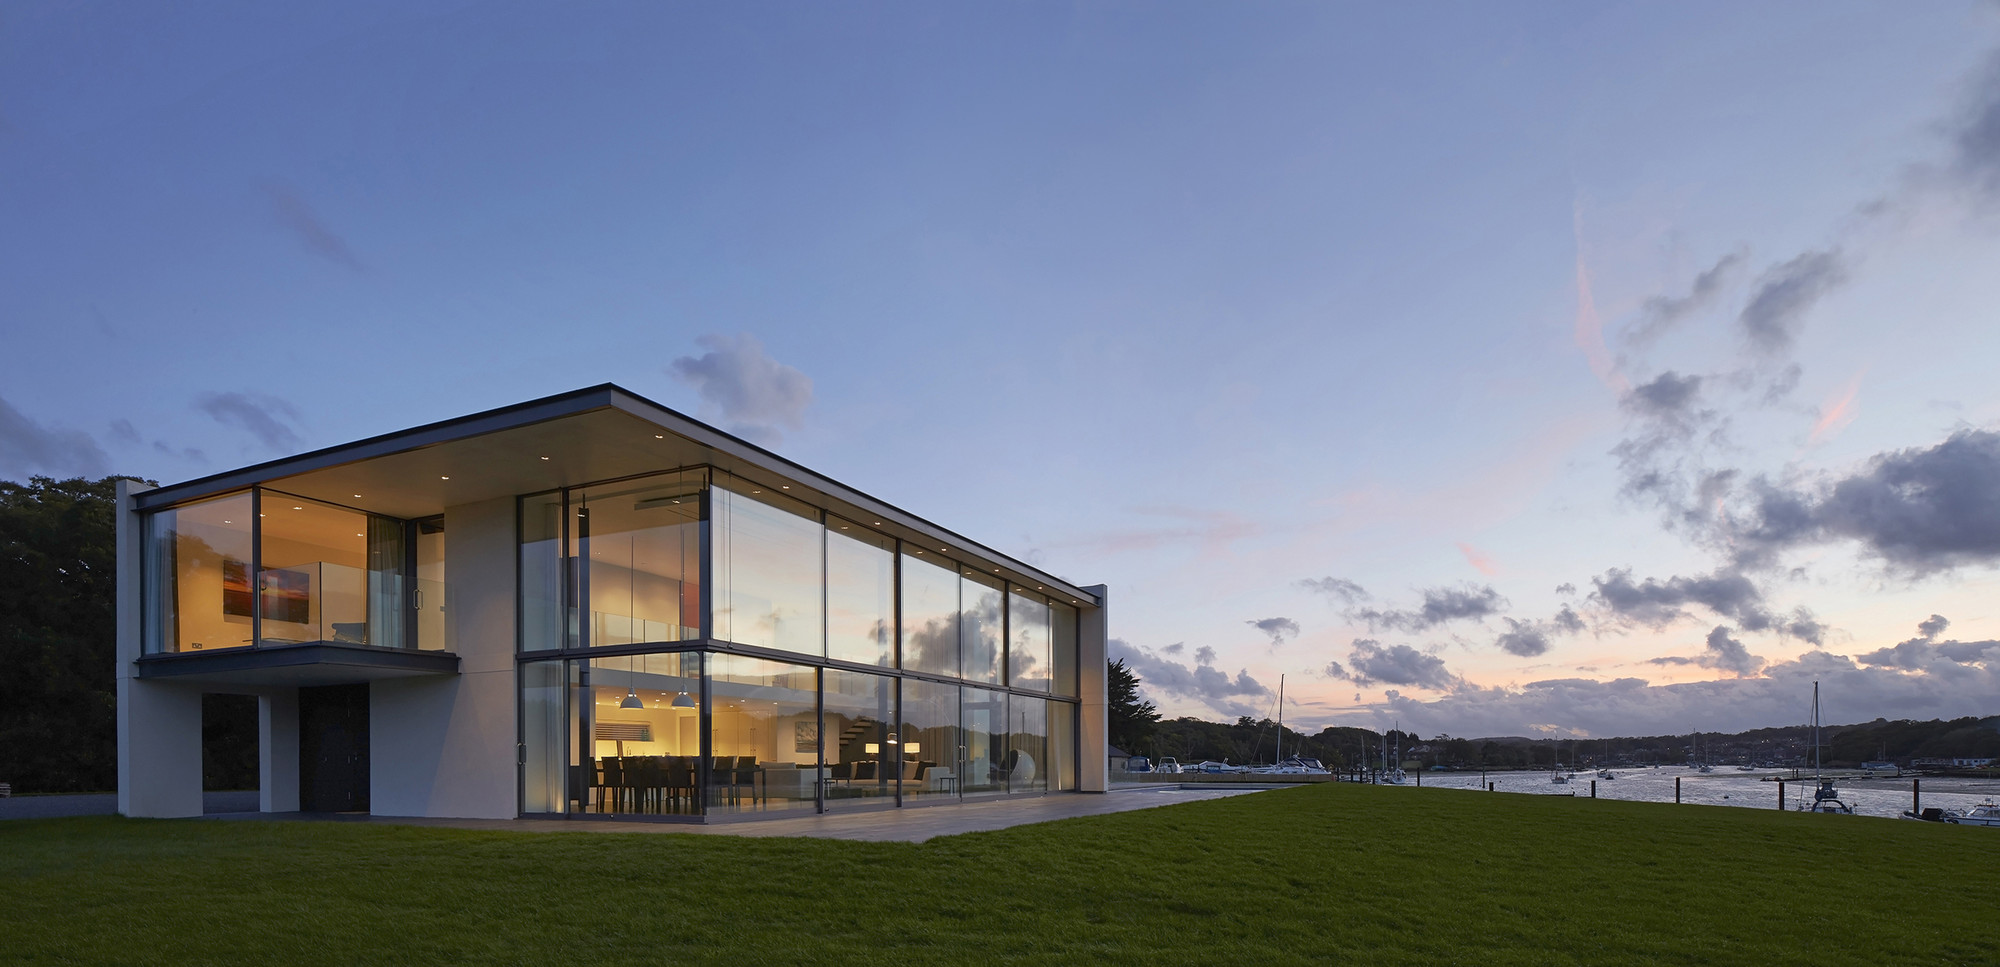 Fishbourne Quay / The Manser Practice Architects + Designers, © Hufton+Crow